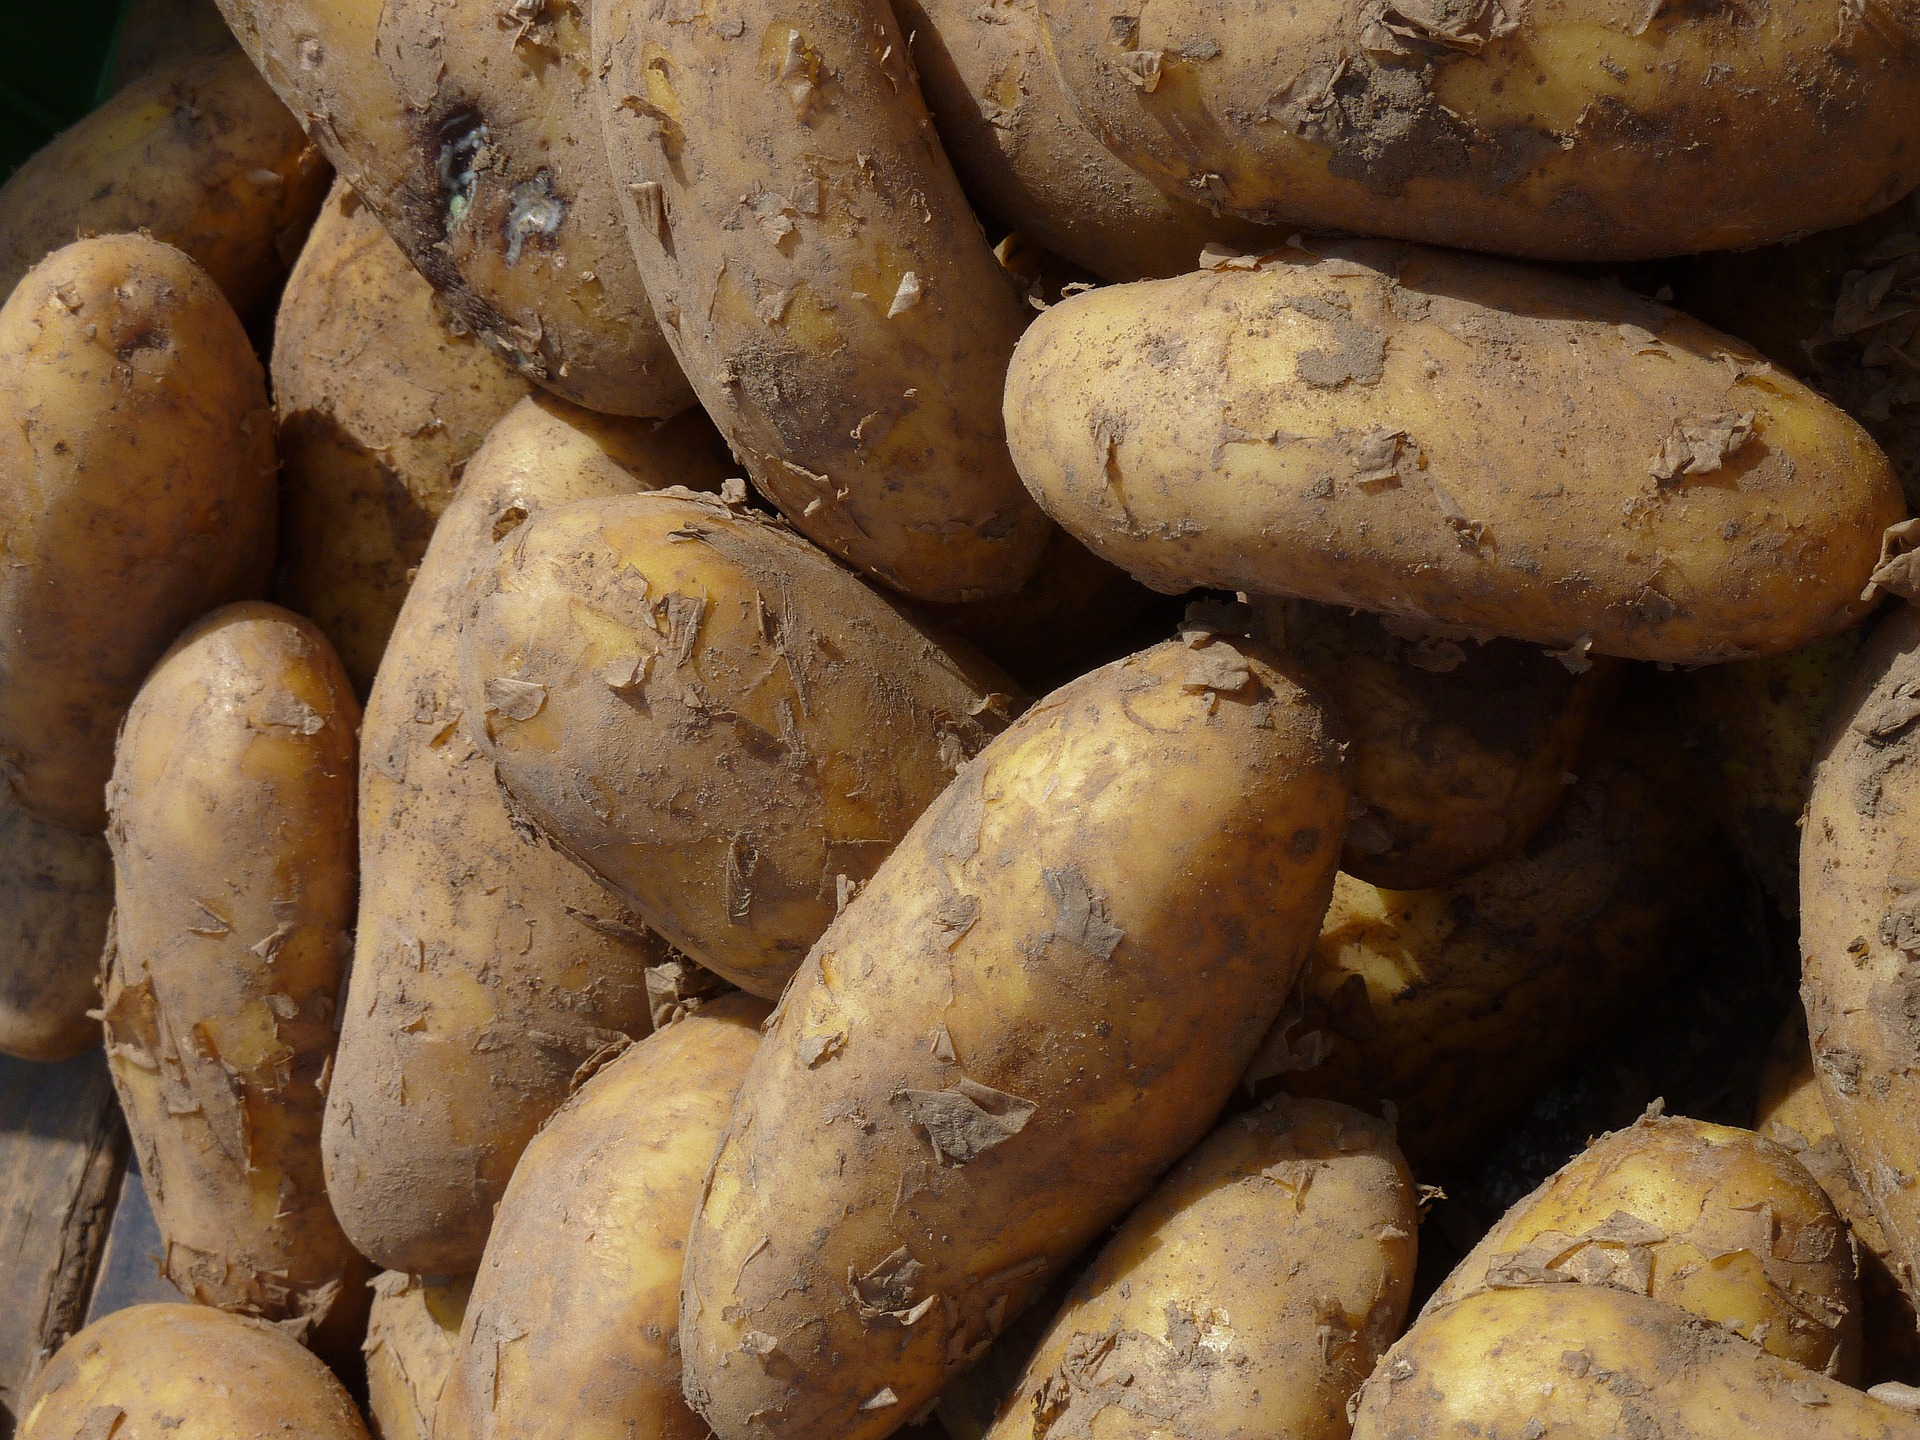 Burbank is famously known for his development of the Russet-Burbank potato.